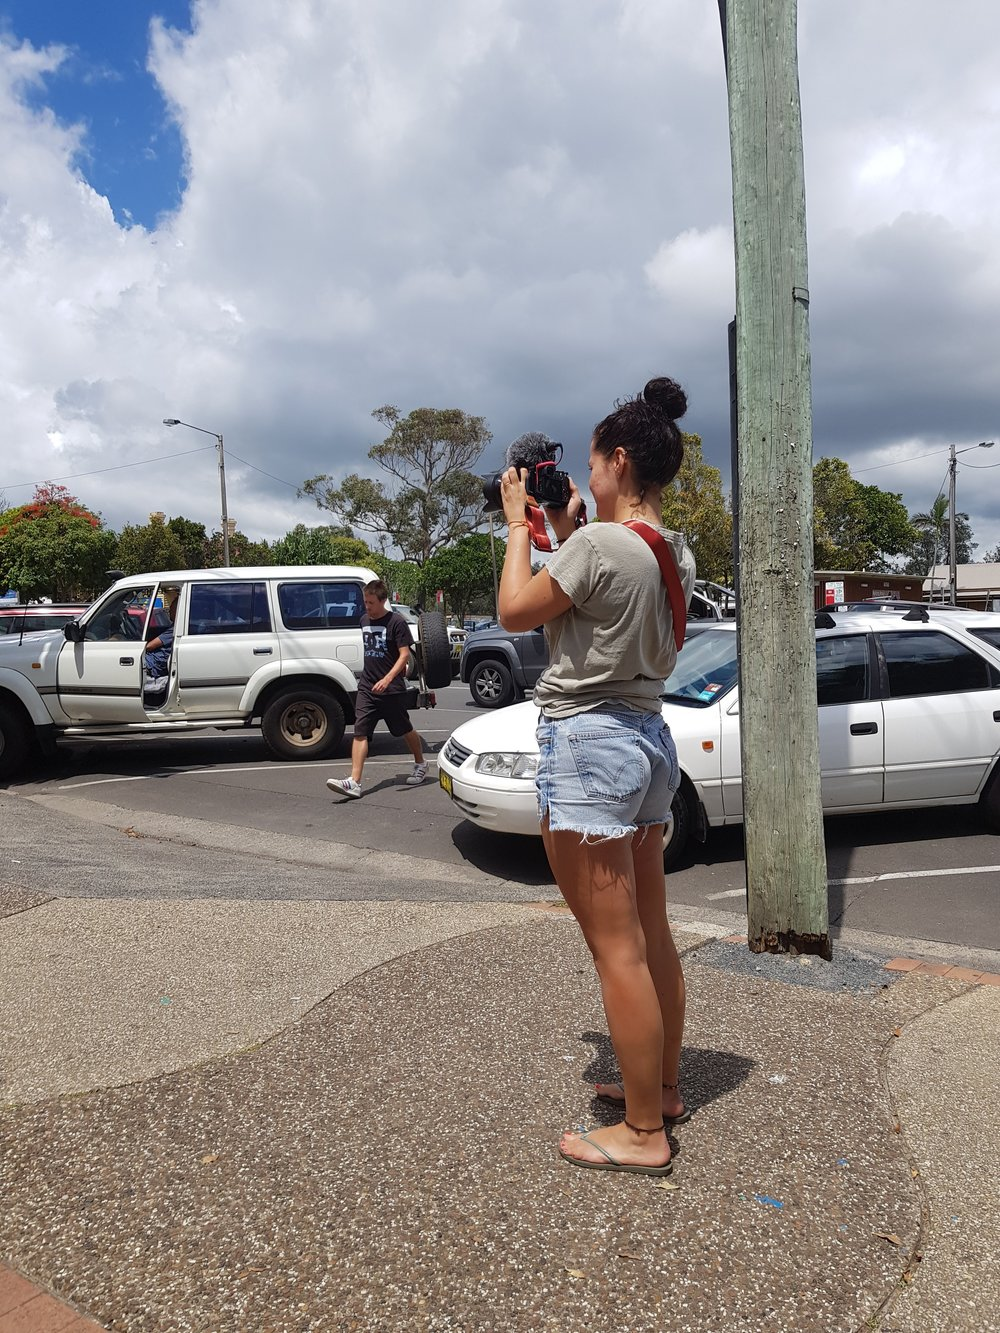 Getting some content for the next Vlog.  Main Street, Byron Bay